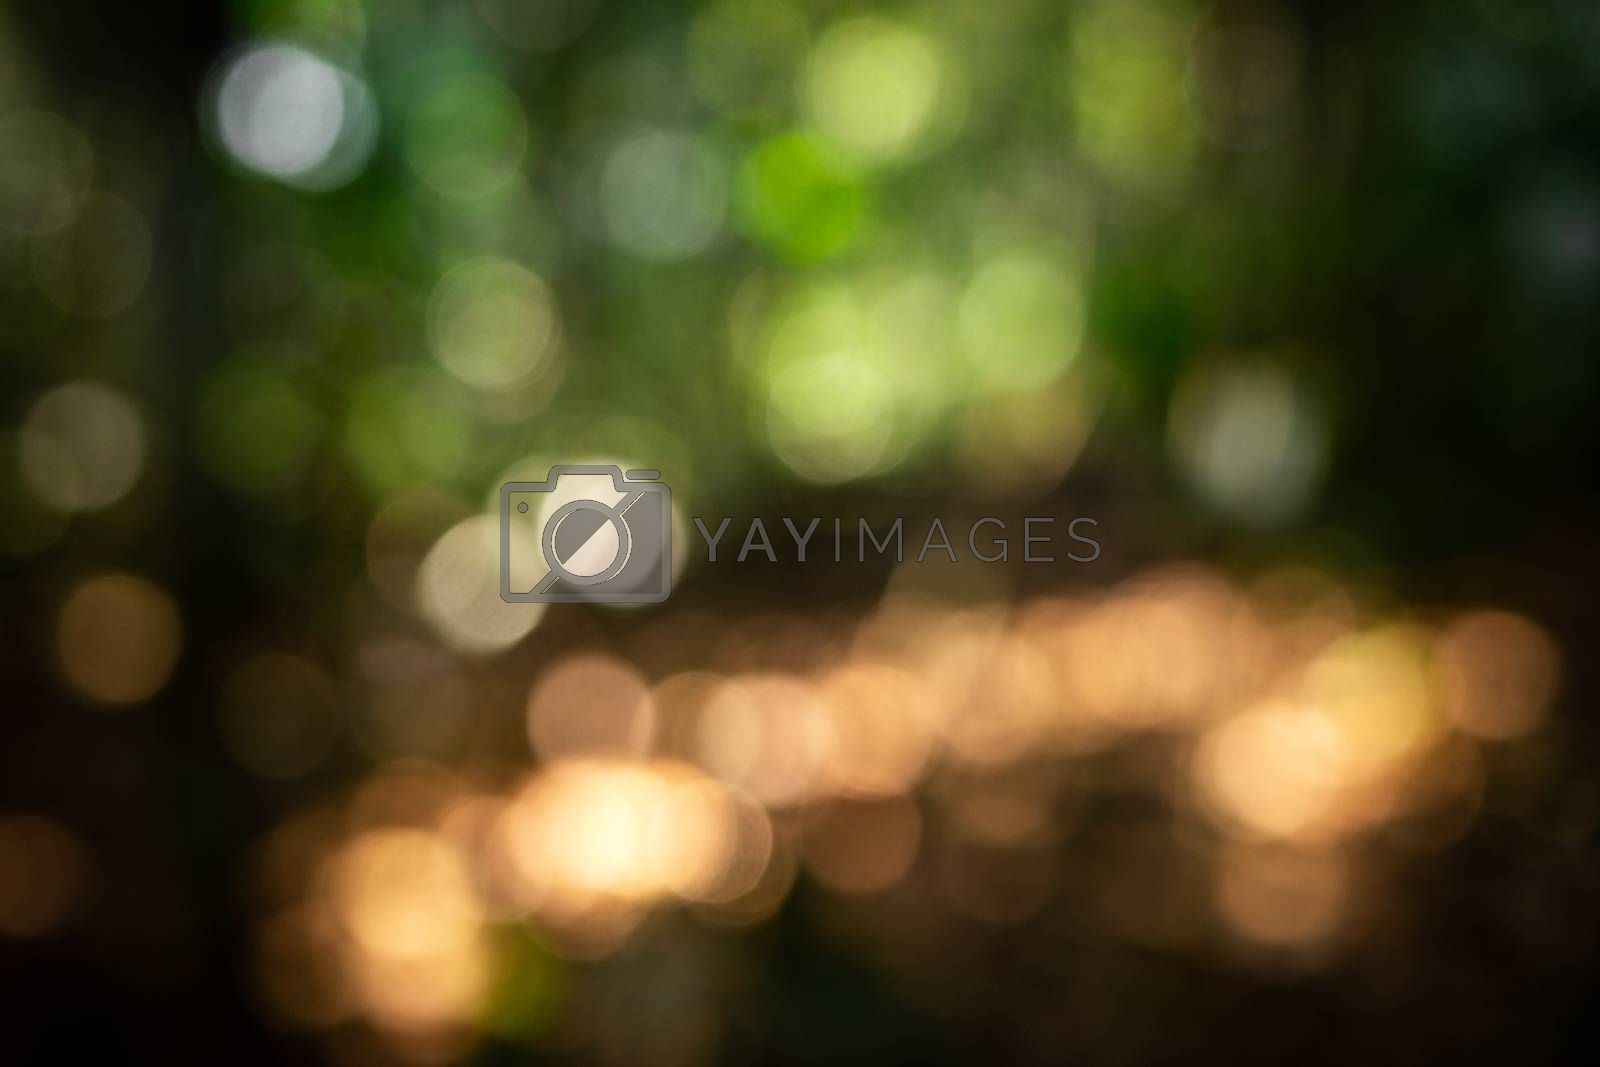 Blurry scene of sunlight through green leaves over brown ground inside tropical rainforest in defocusing technique.